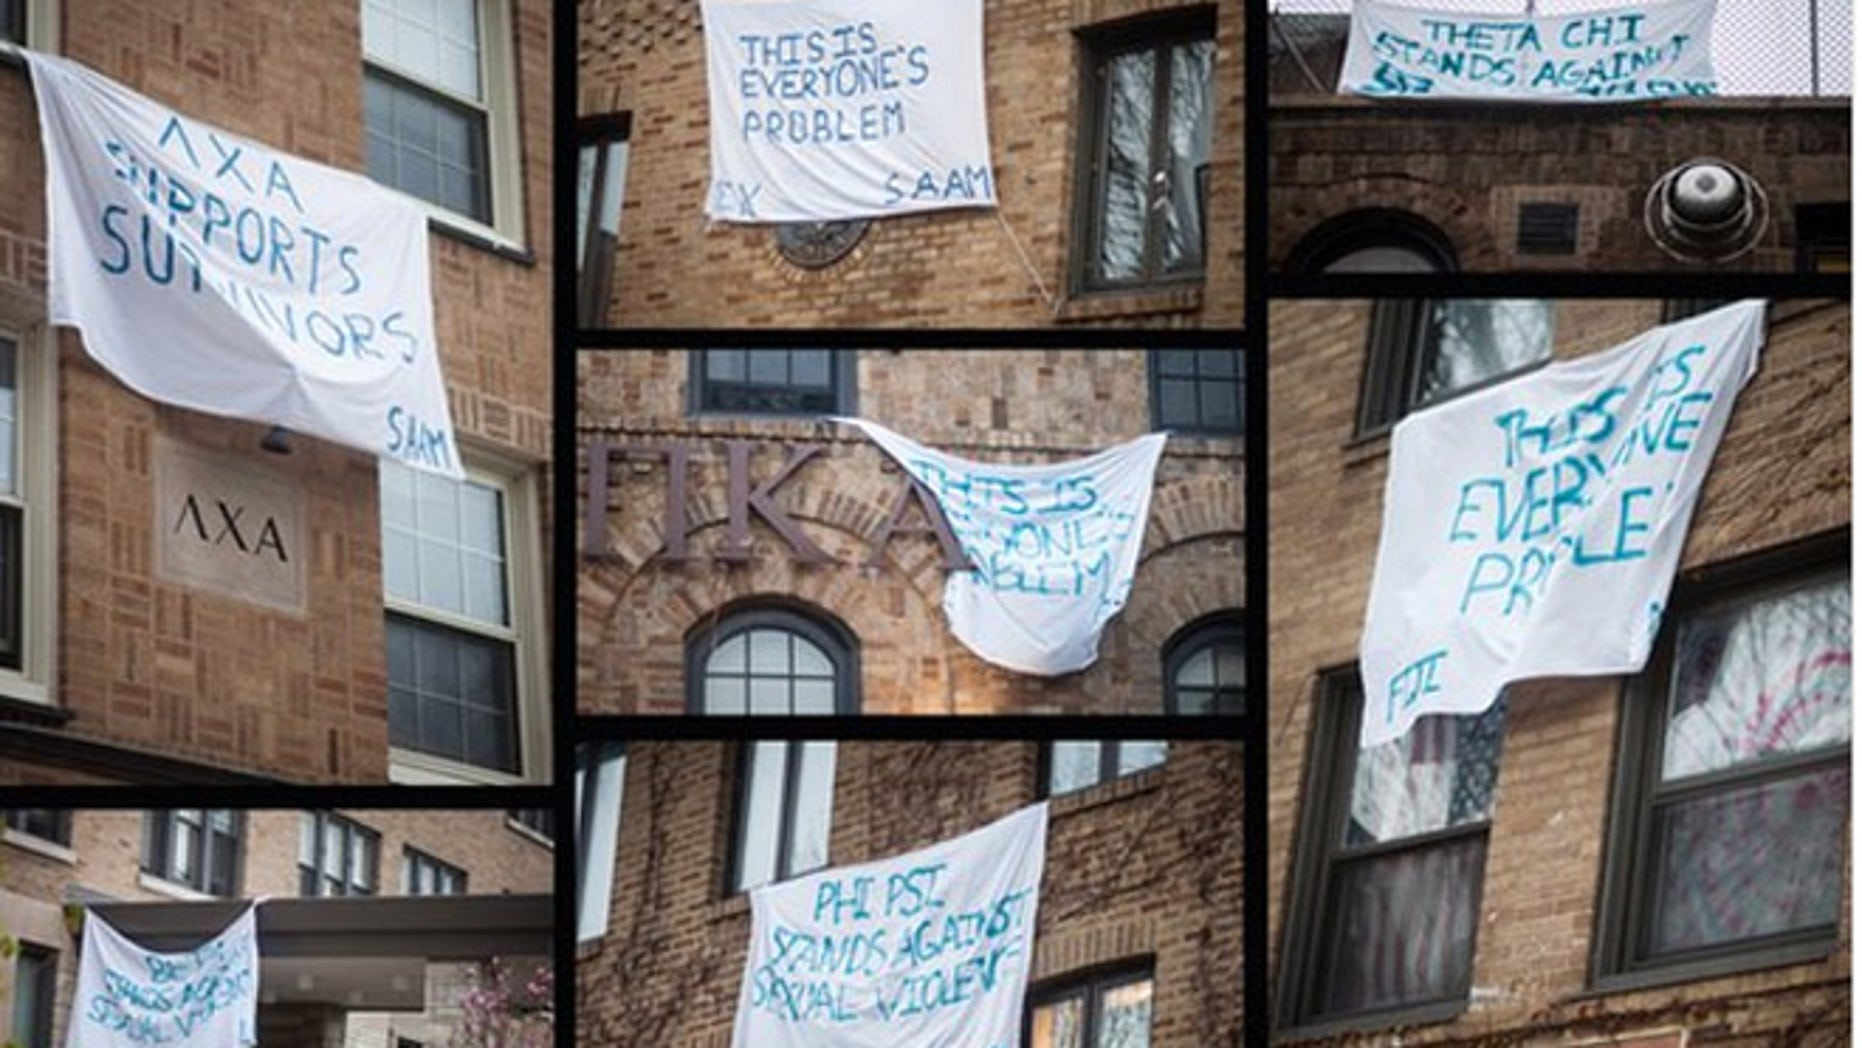 The banners hung out by Northwestern fraternities were apparently weel-intentioned, but feminists groups were angry. (The Daily Northwestern)